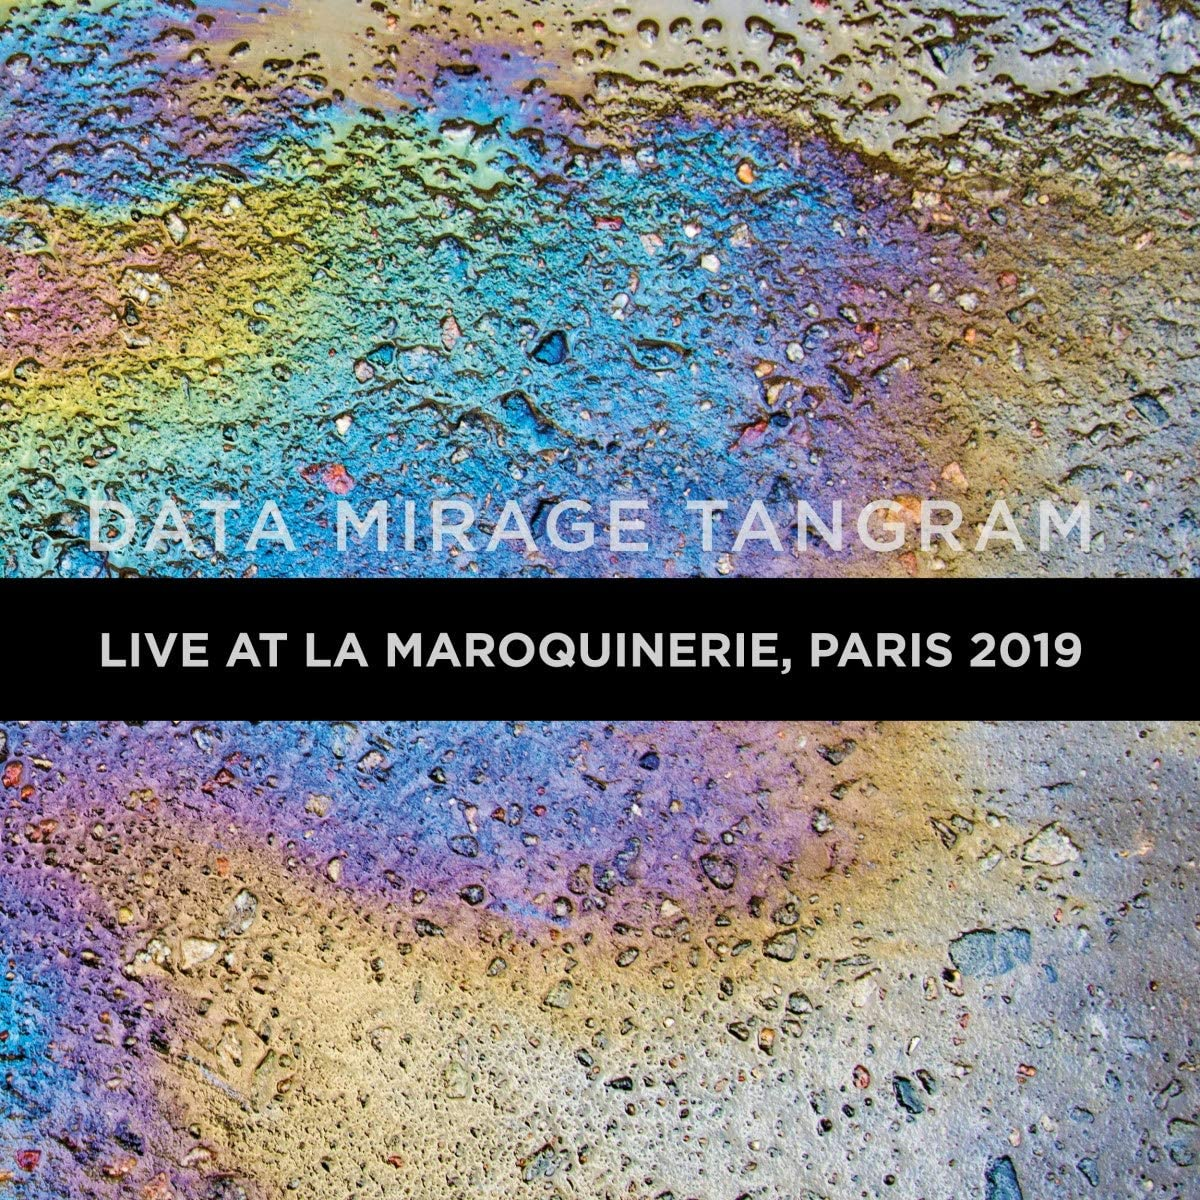 DATA MIRAGE TANGRAM LIVE AT LA MAROQUINERIE 2019